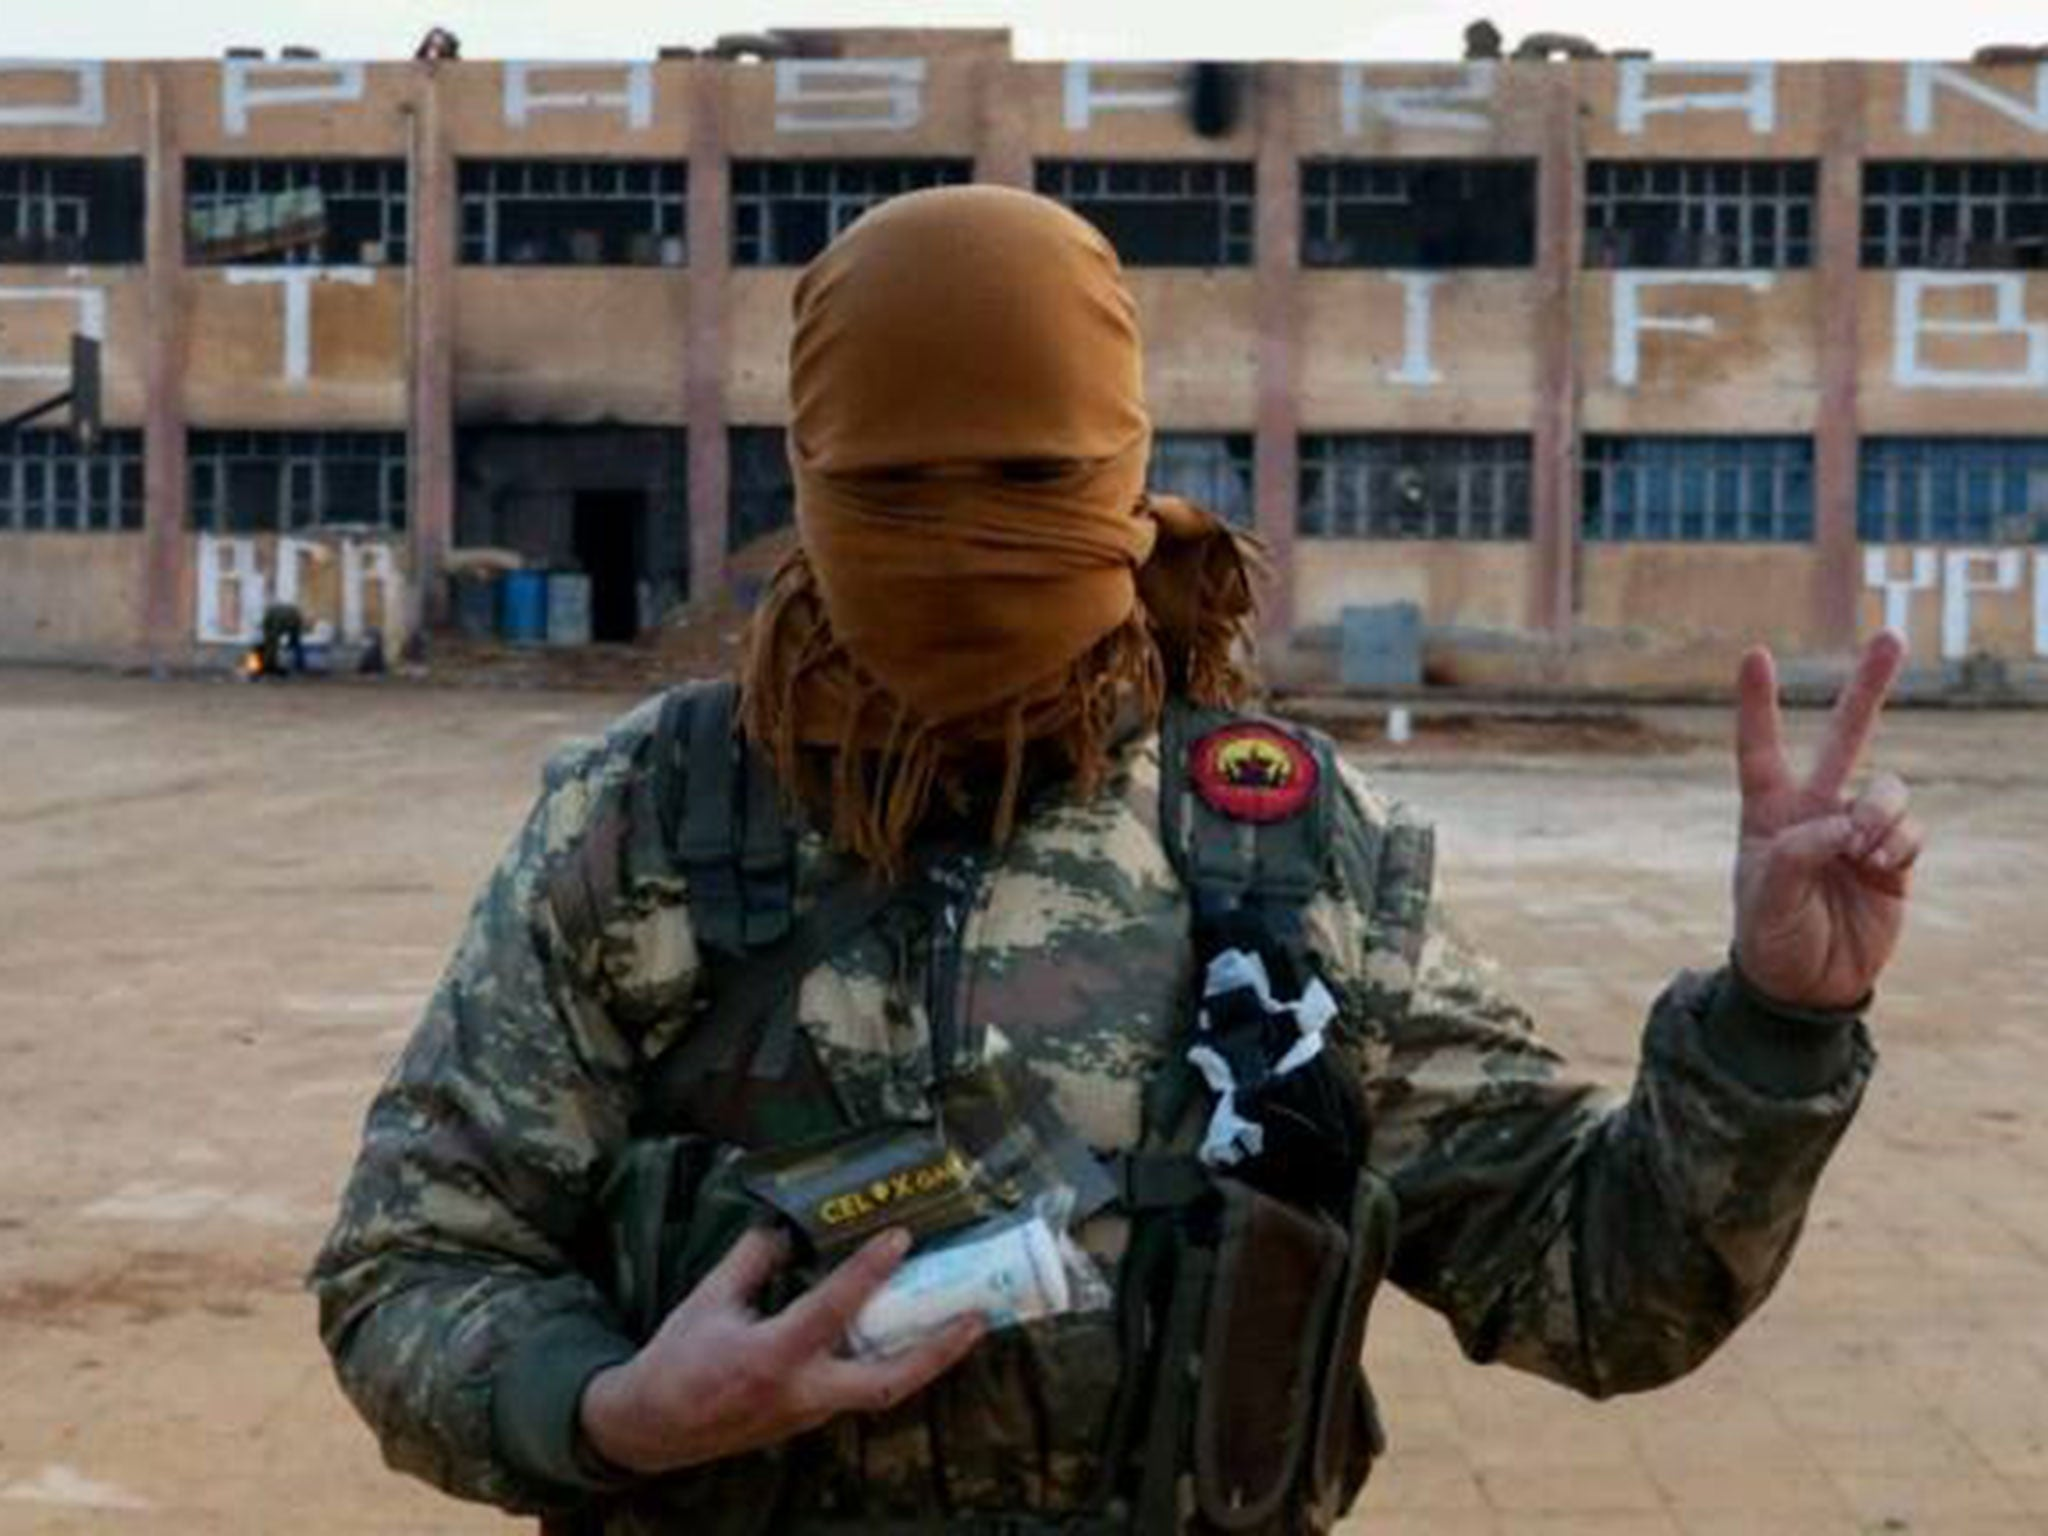 British Antiisis Fighters 'trolling' Terrorists In Syria